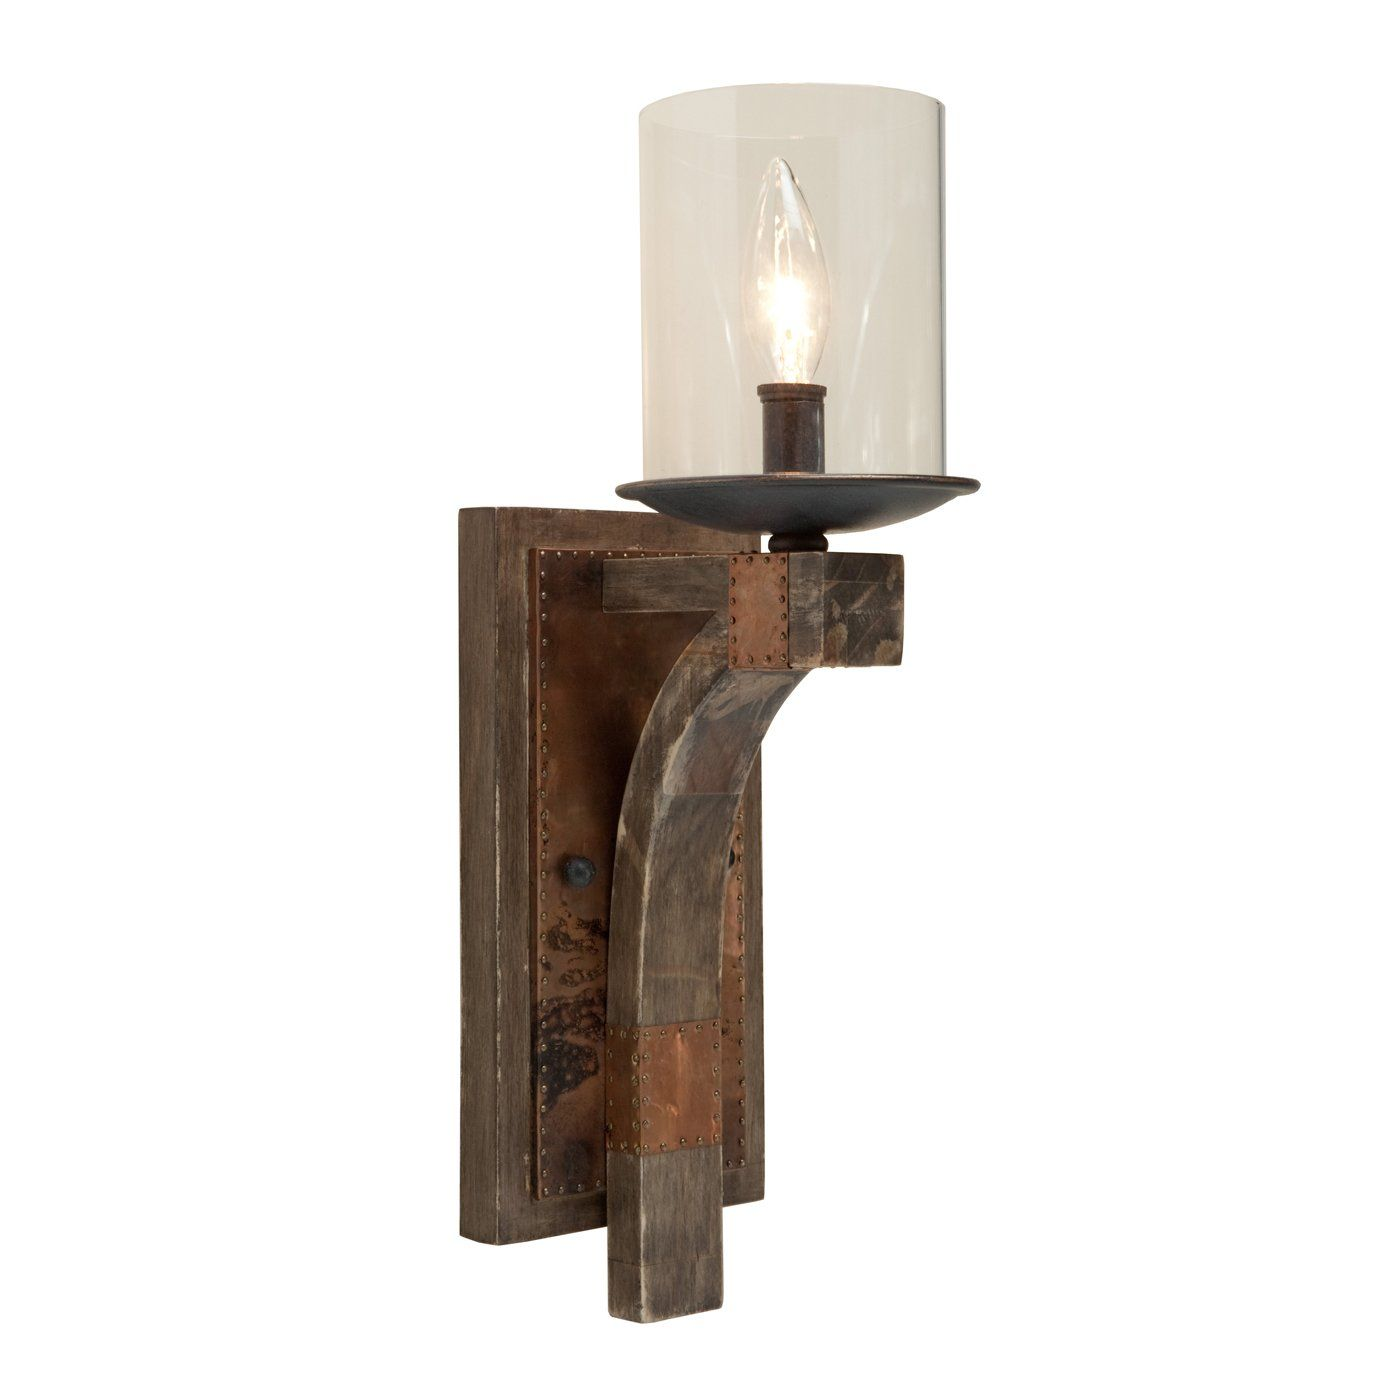 Artcraft Lighting Ja487 Hockley Wall Sconce Lighting